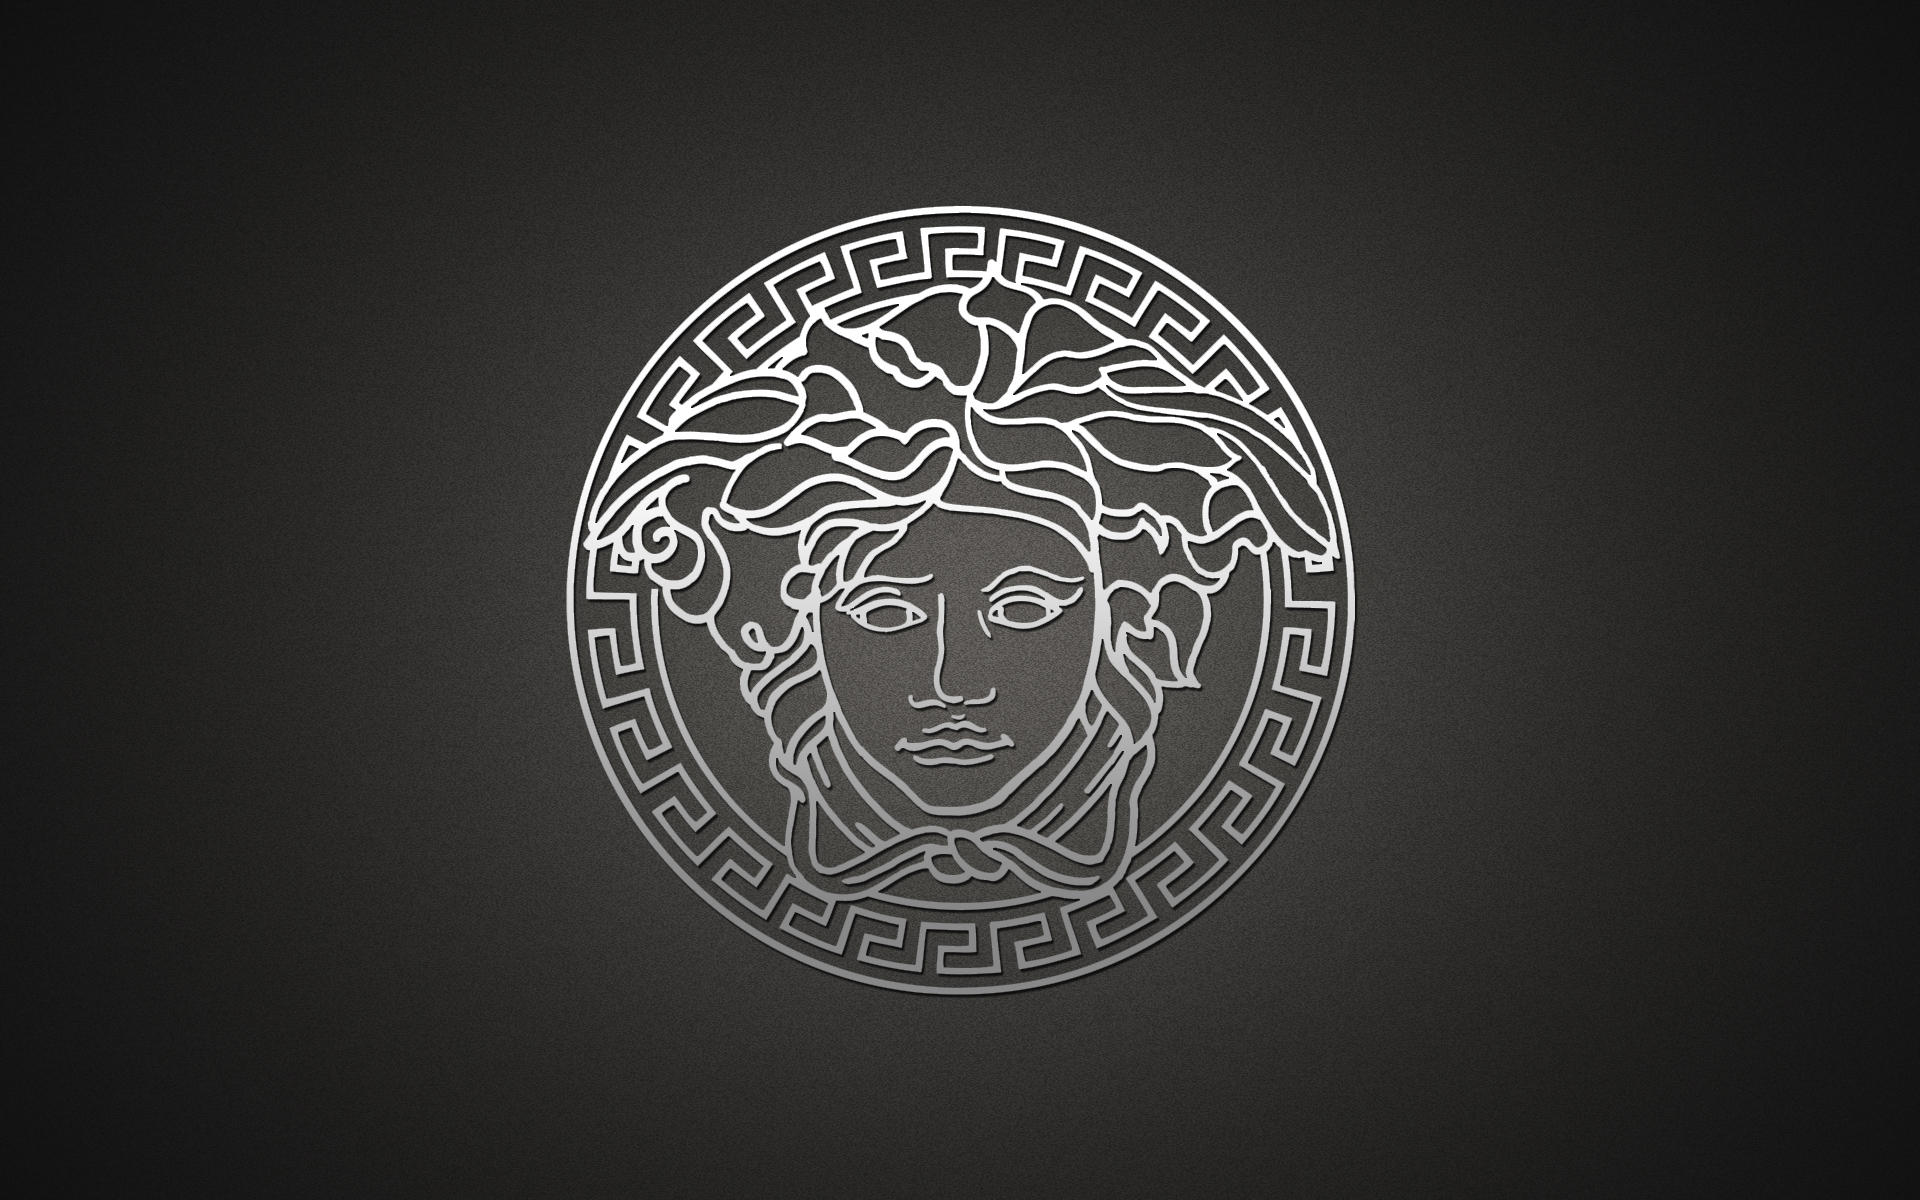 Versace Medusa Wallpaper The gallery for -->...